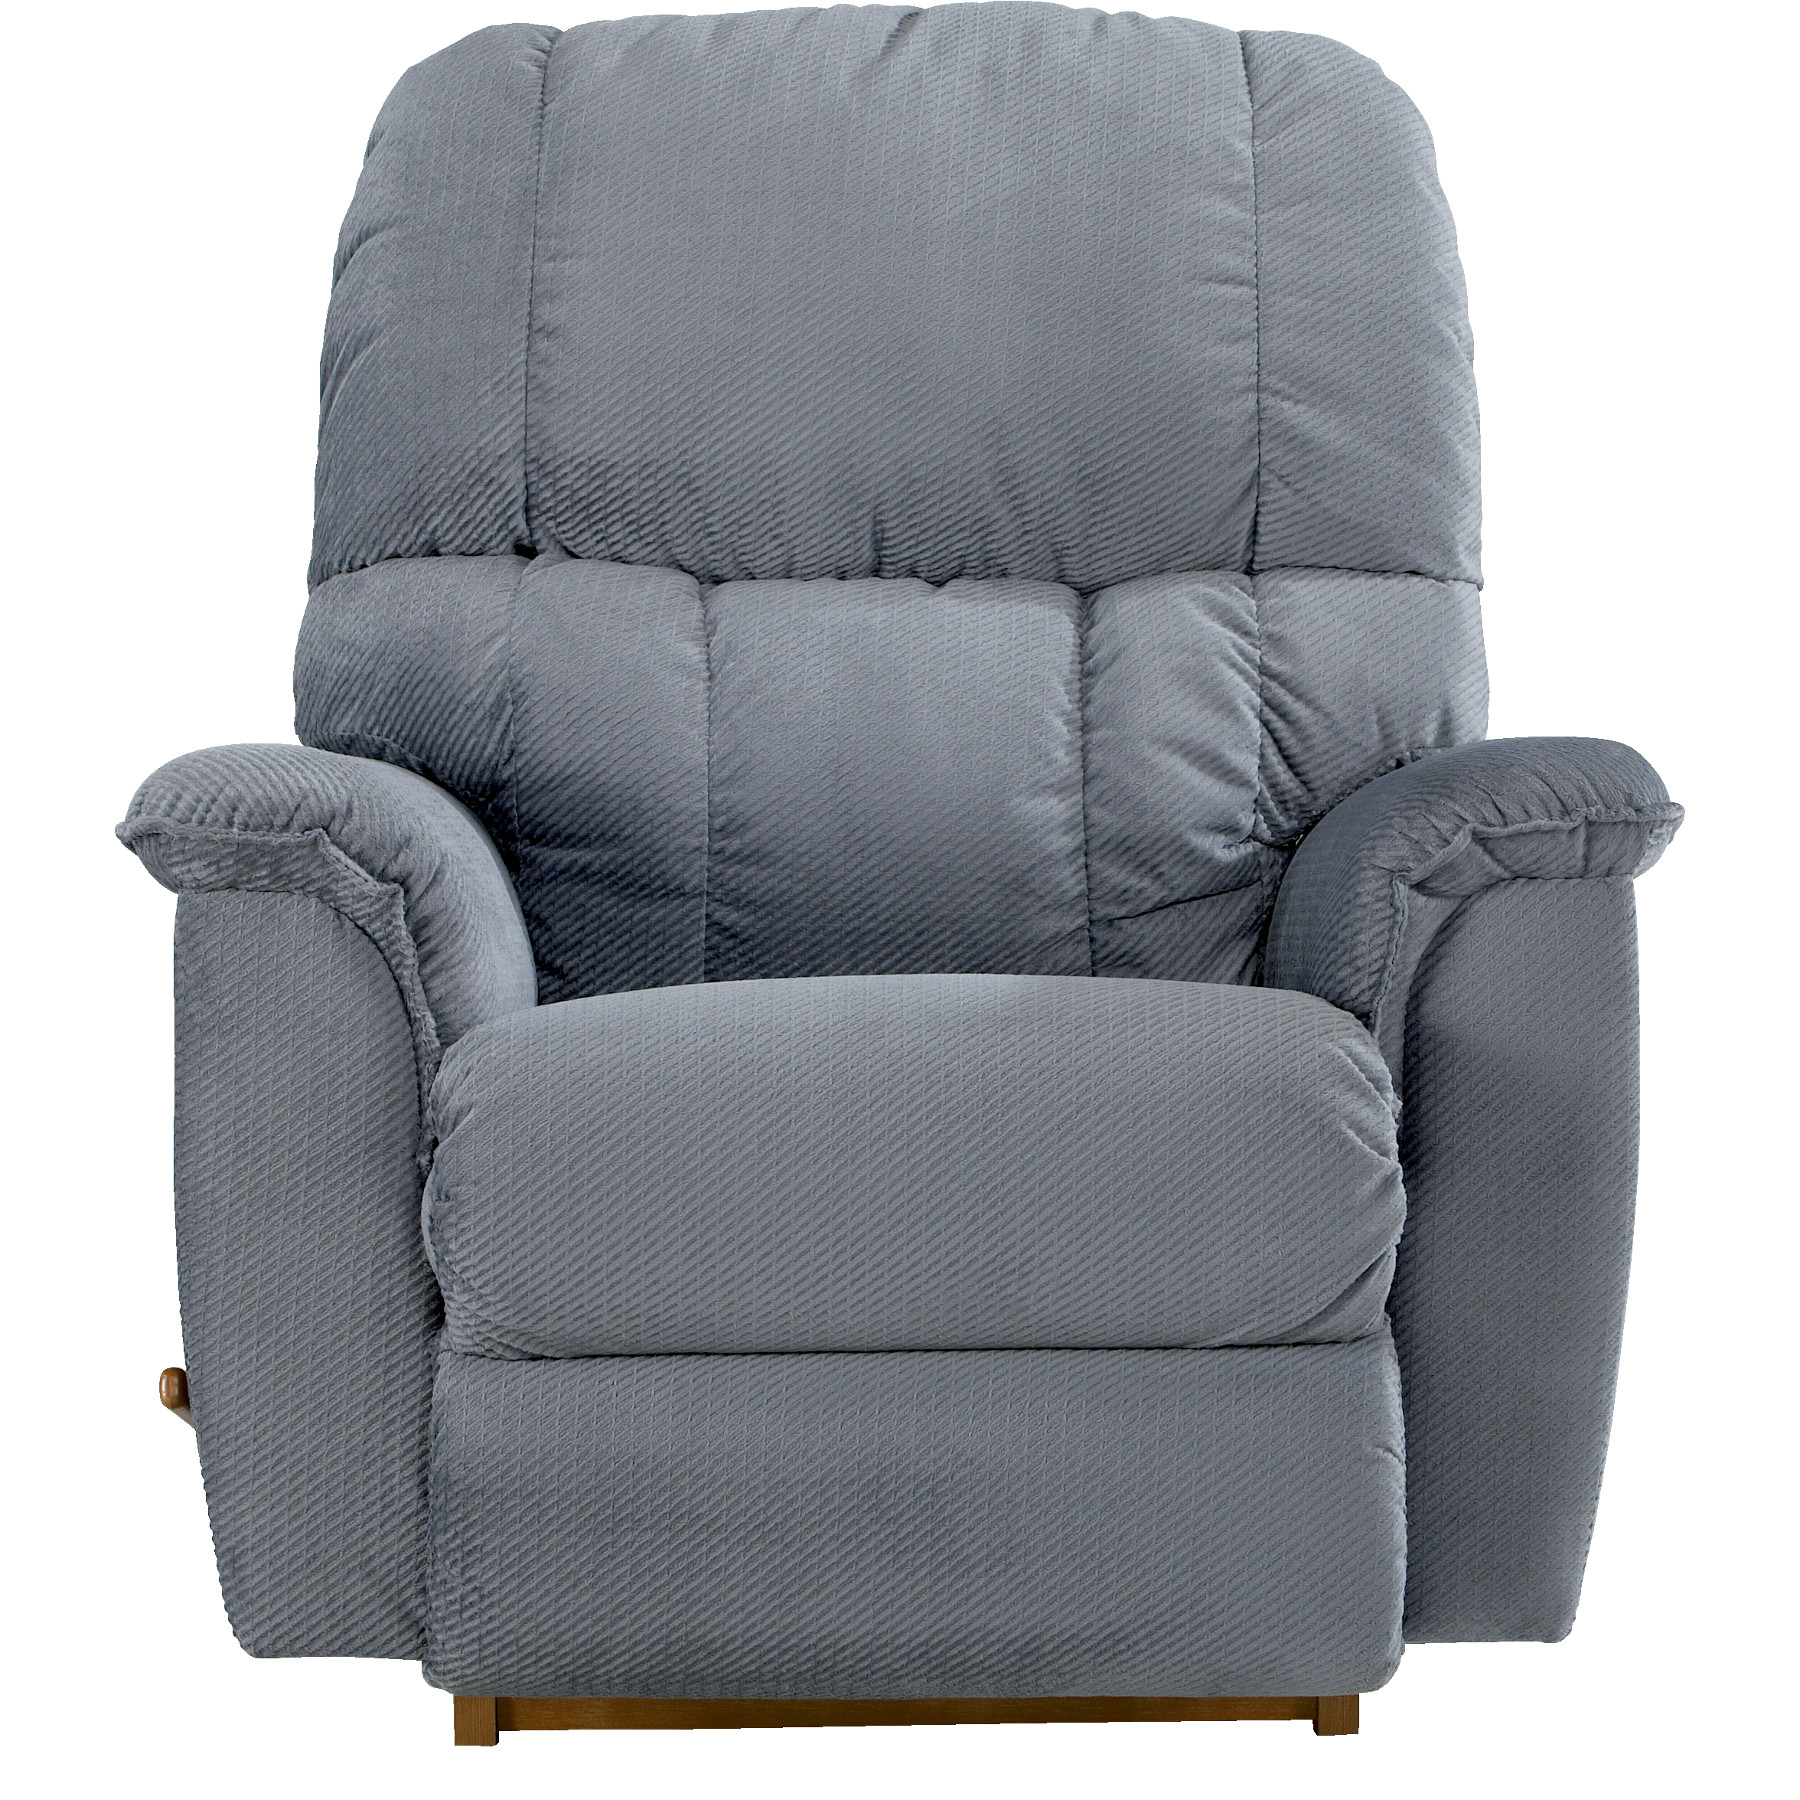 La-Z-Boy IMPERIAL ROCKER RECLINER COASTAL BLUE